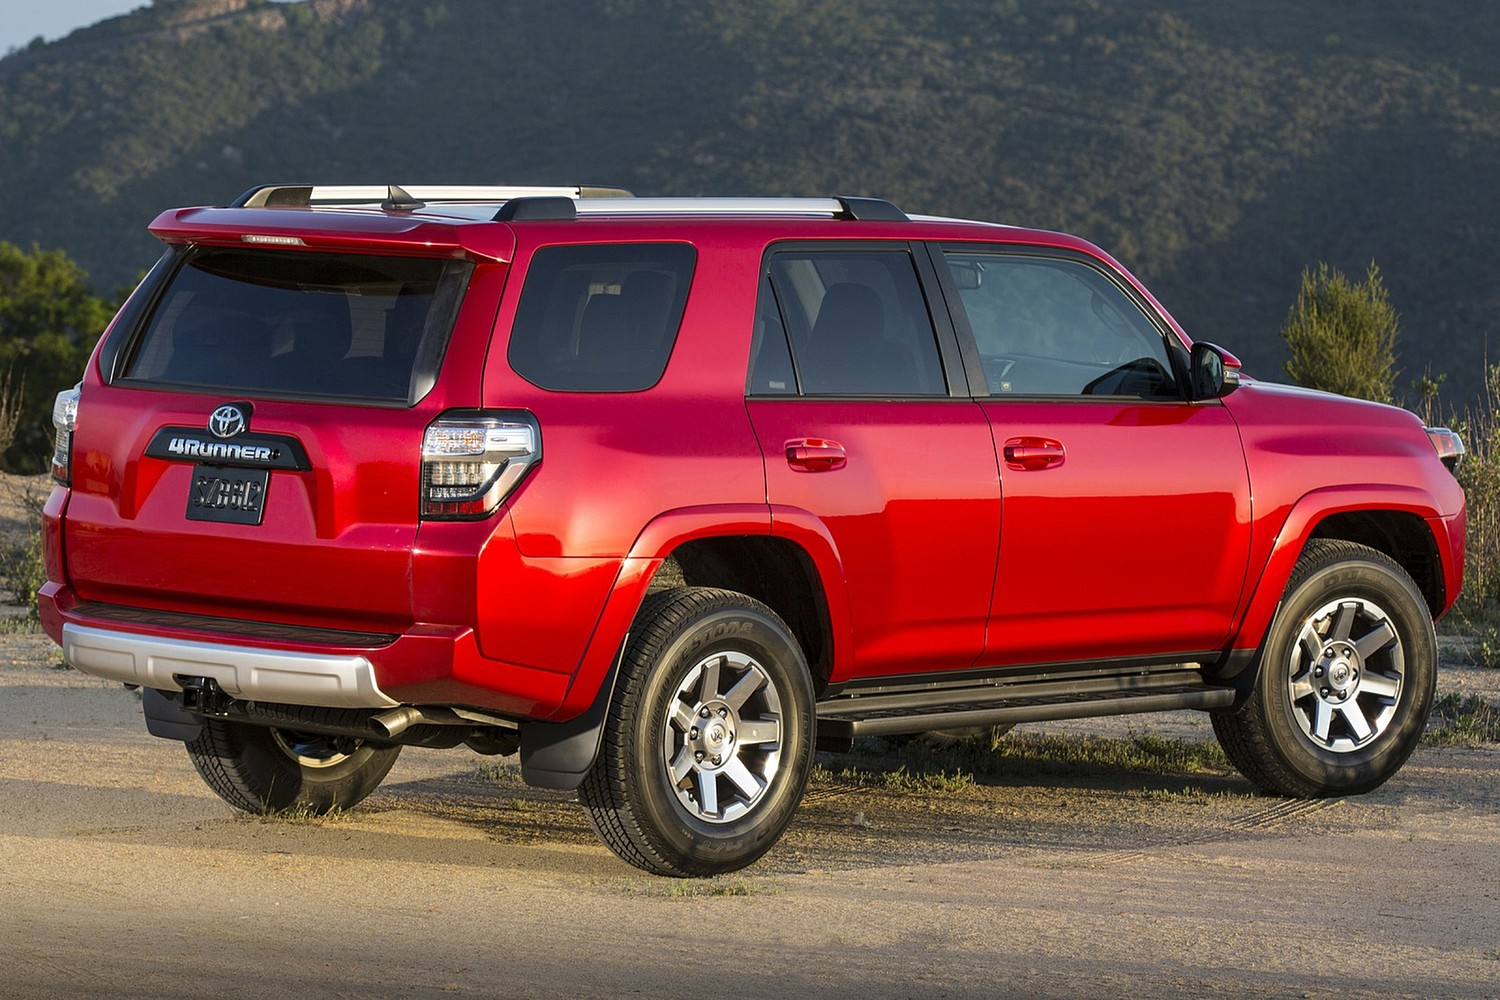 2015 toyota 4runner suv vehie. Black Bedroom Furniture Sets. Home Design Ideas